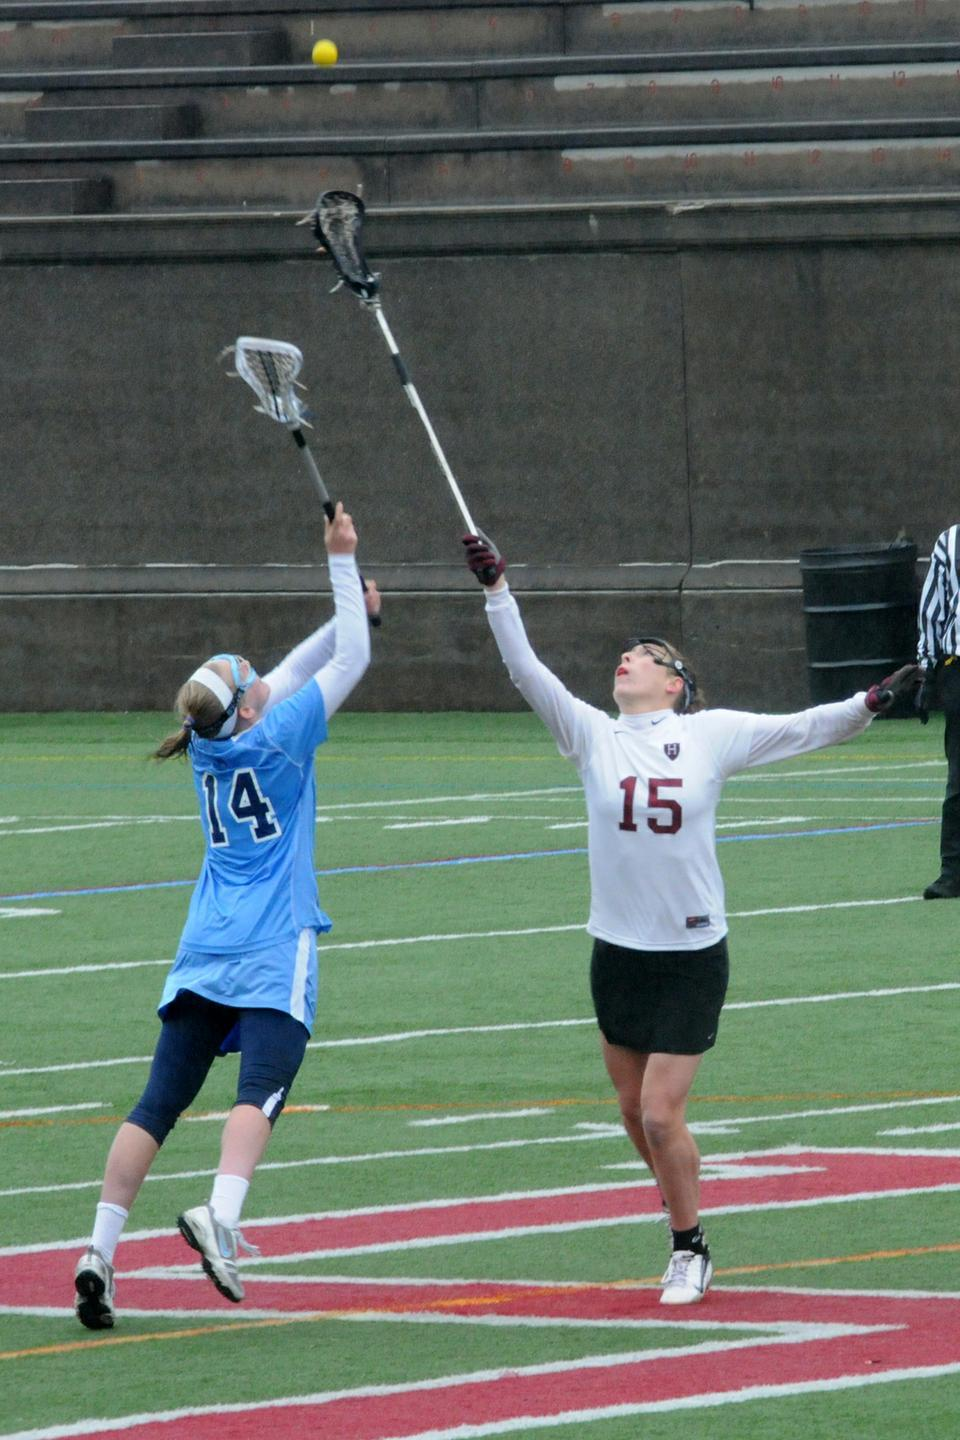 Sophomore attack Jennifer VanderMeulen had a game-high five goals Saturday afternoon to lead Harvard to a 15-9 win over Columbia at Harvard Stadium.